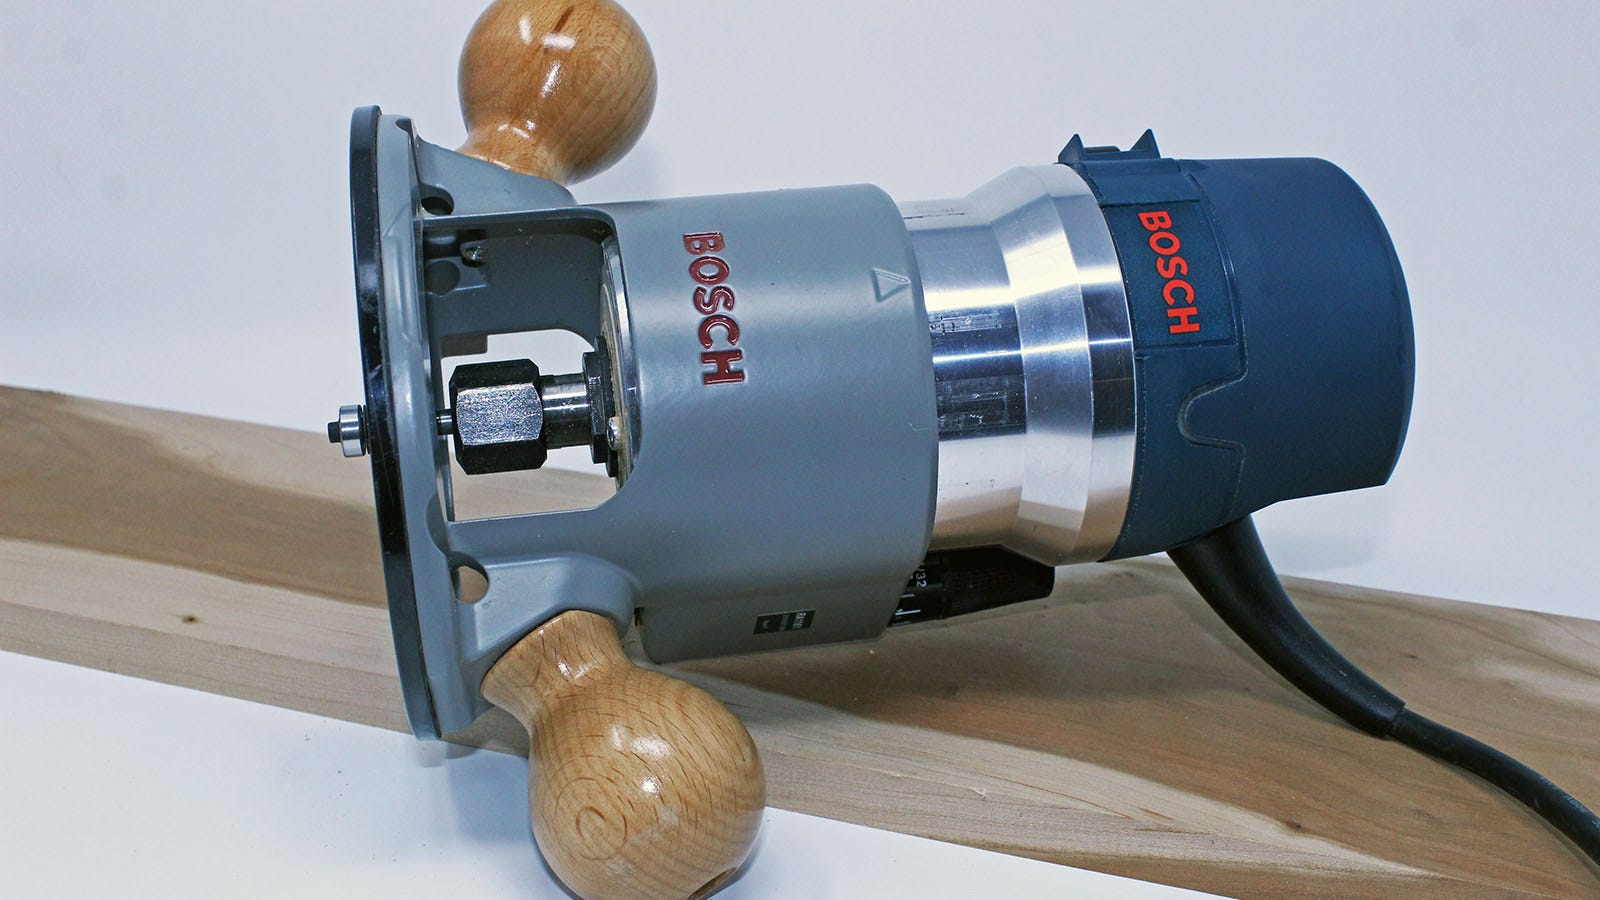 A Bosch 1617EVS with bit inserted, laying on a cherry plank.